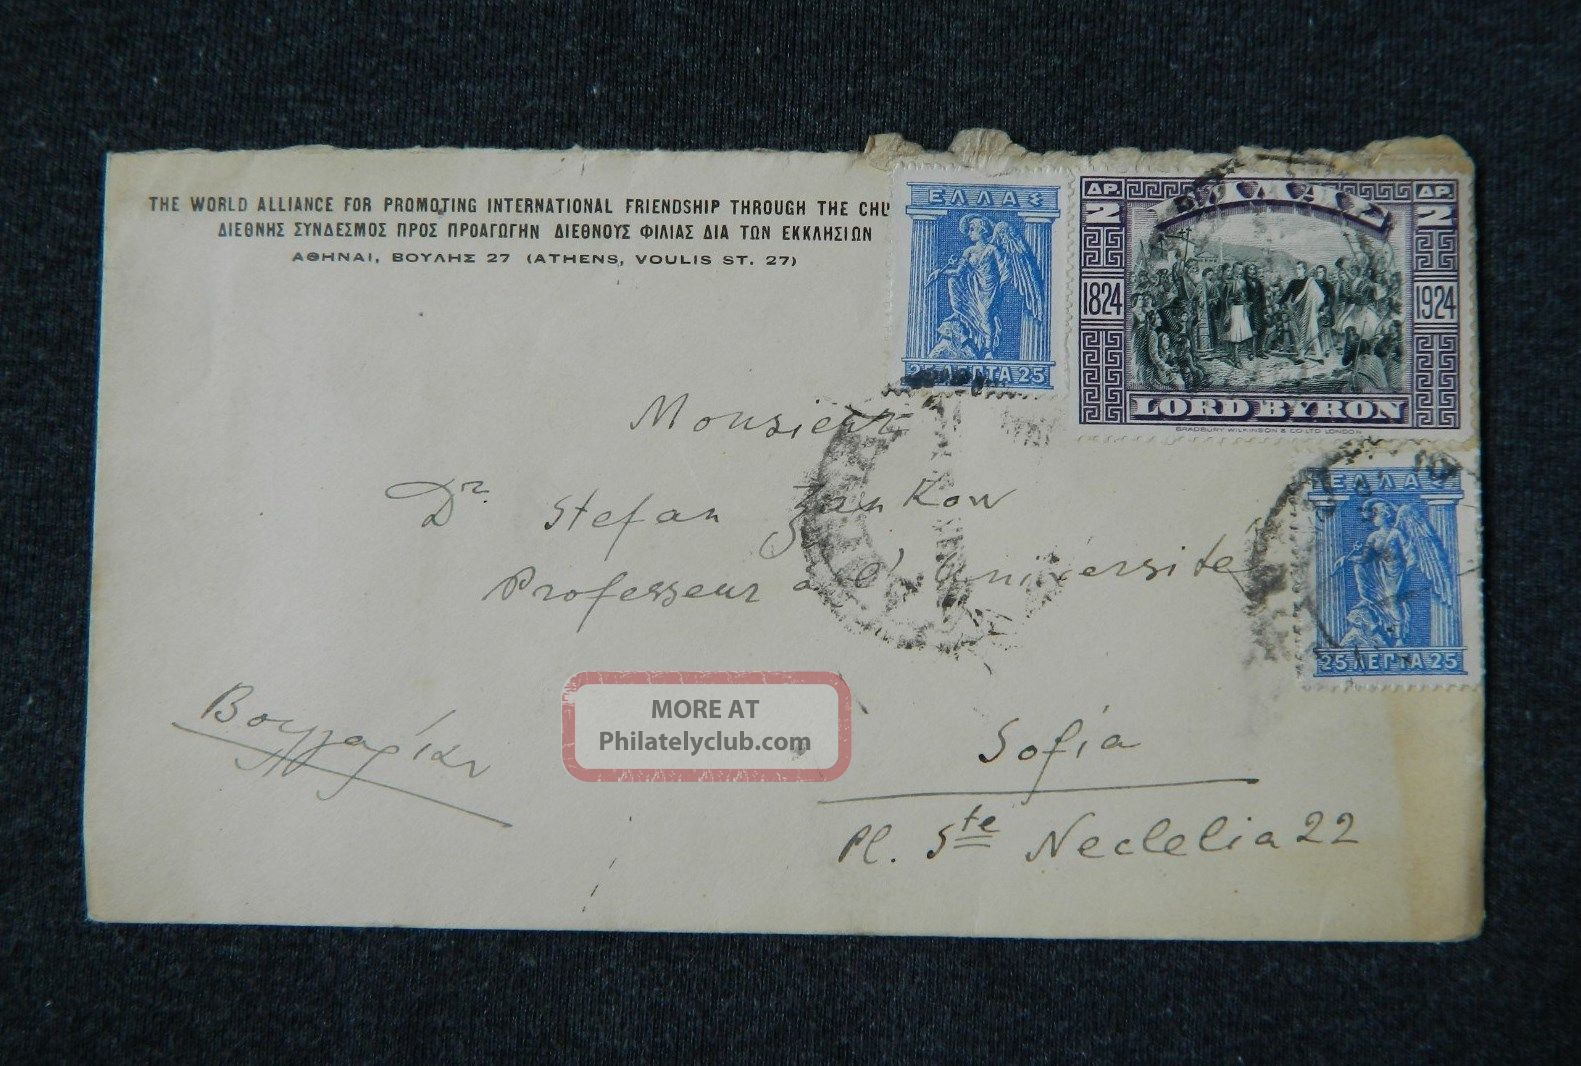 Greece Griechenland To Bulgaria Airmail Cover 1925 Worldwide photo